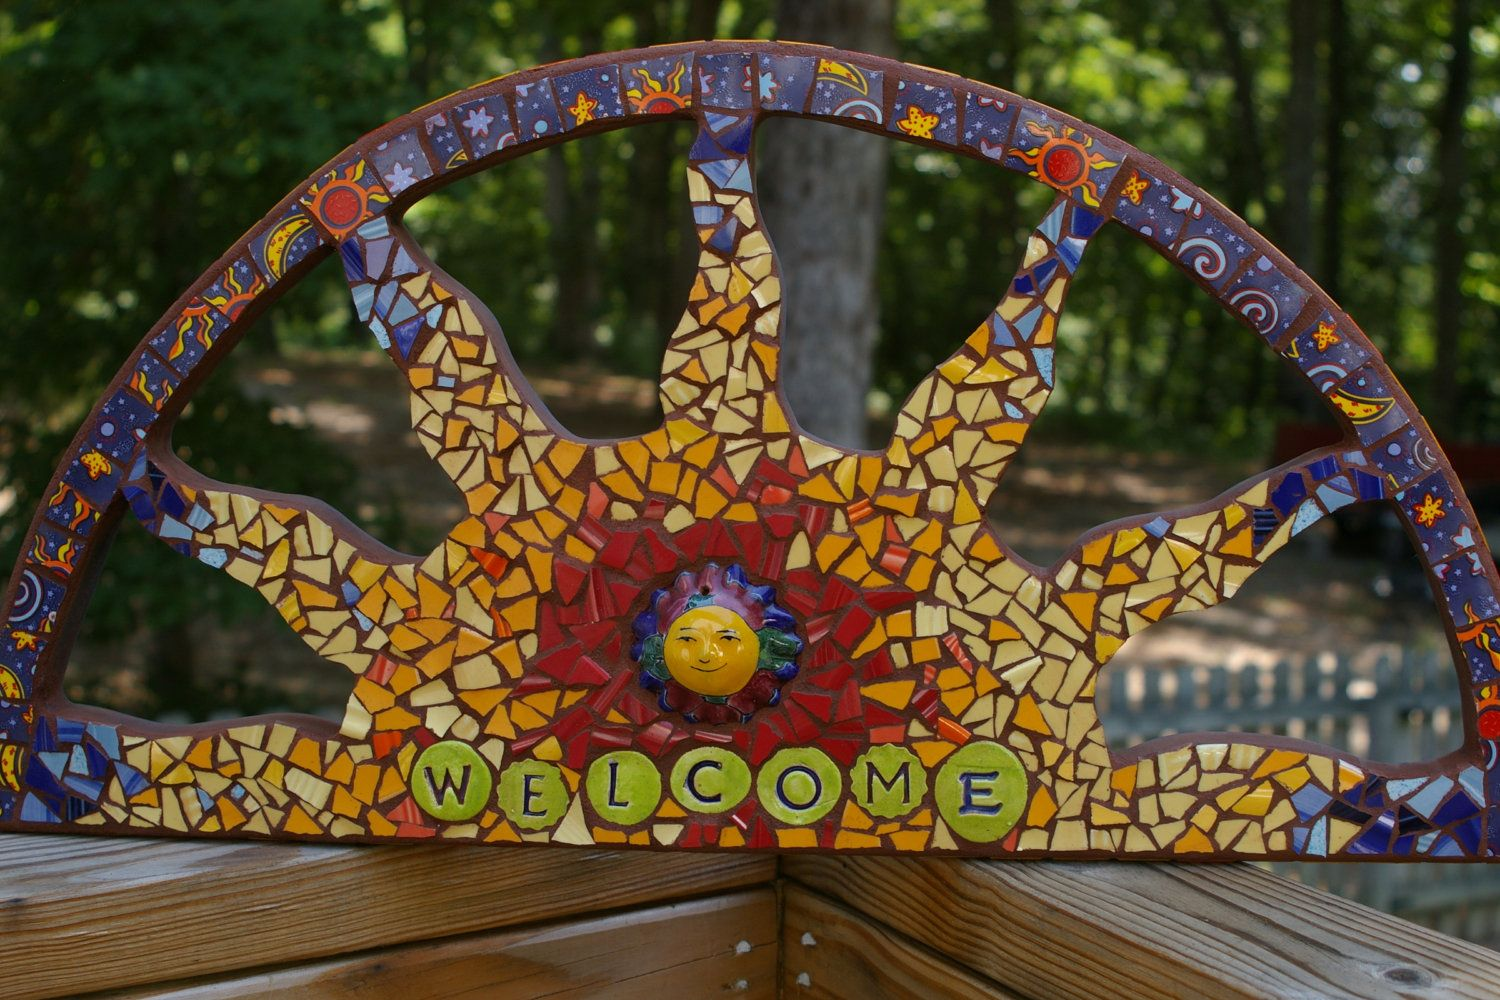 Welcome sun mosaic artwork over door or entrance welcome sign